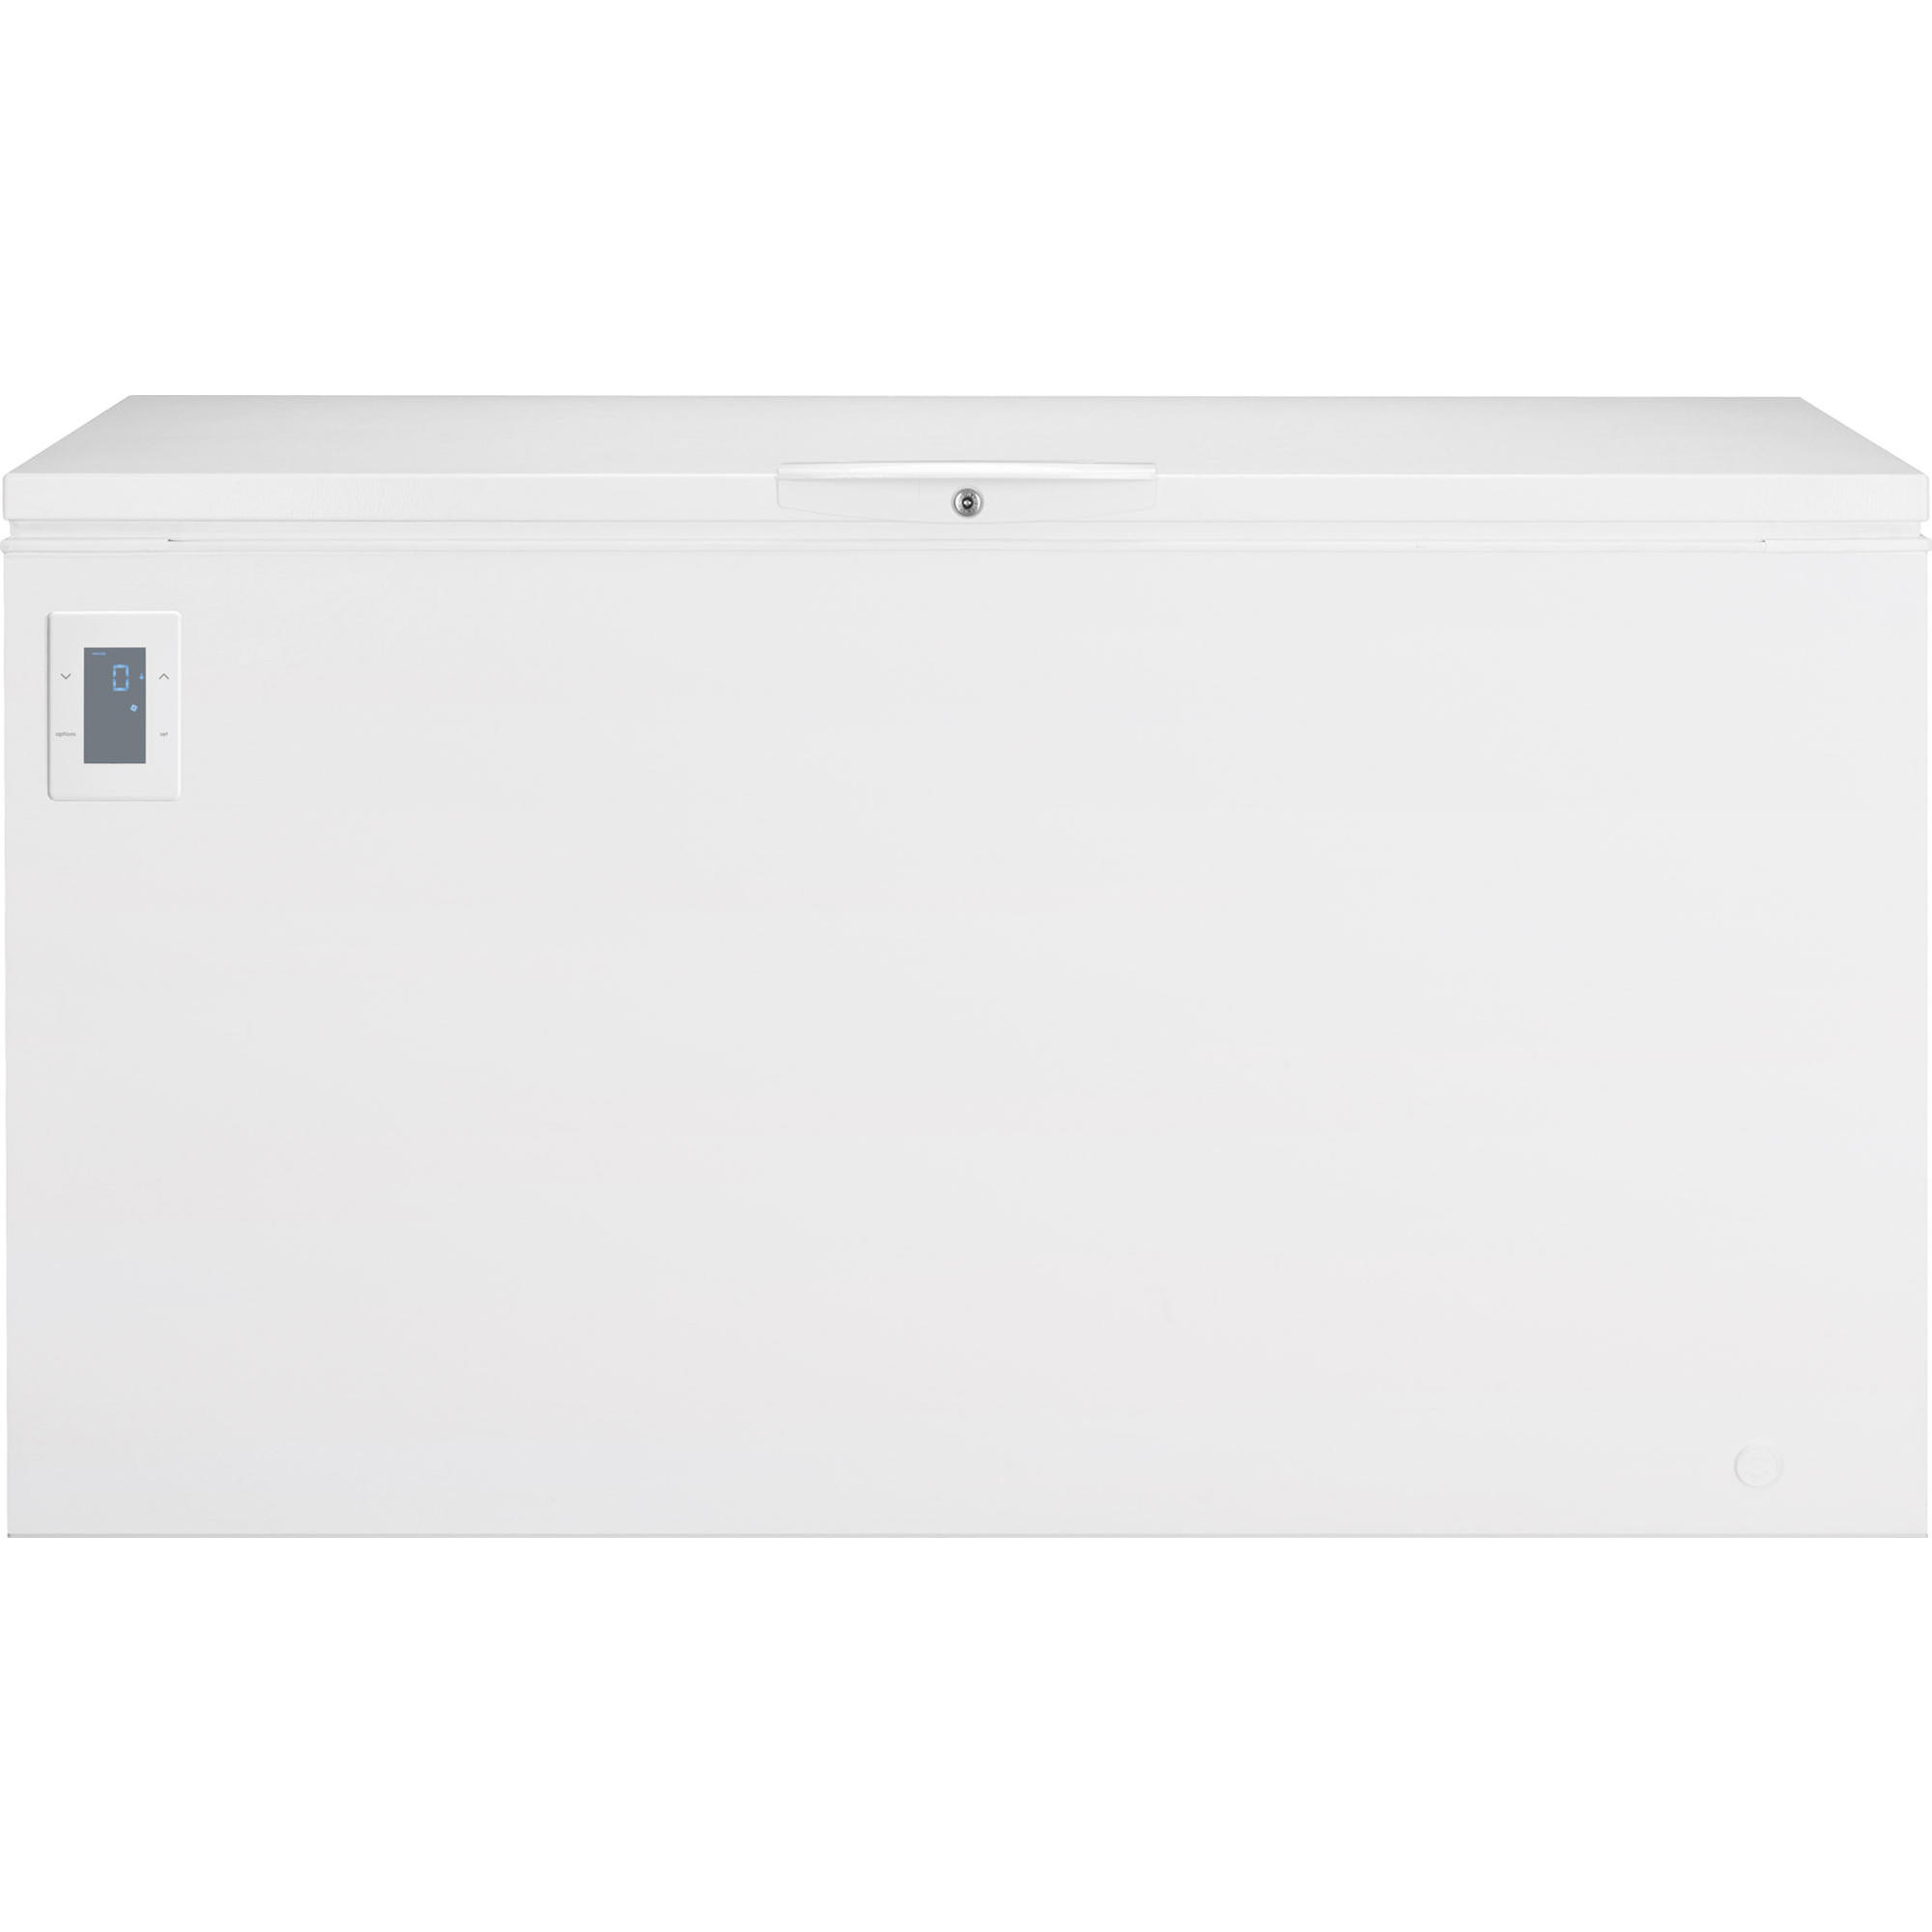 17802-17-5-cu-ft-Chest-Freezer-White